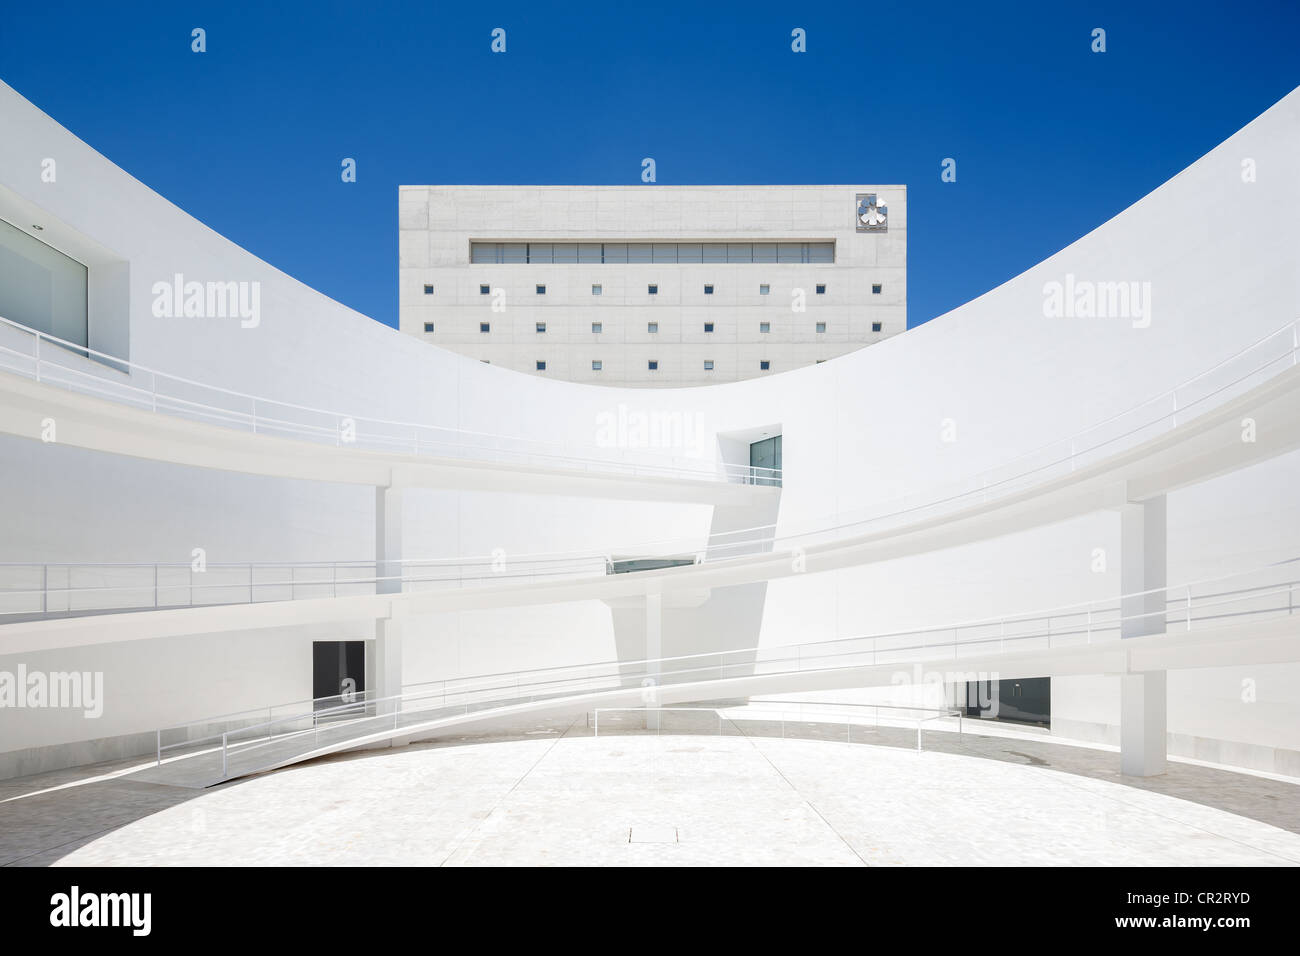 https://c7.alamy.com/comp/CR2RYD/granada-spain-andalucia-museum-of-andalusian-memory-by-alberto-campo-CR2RYD.jpg